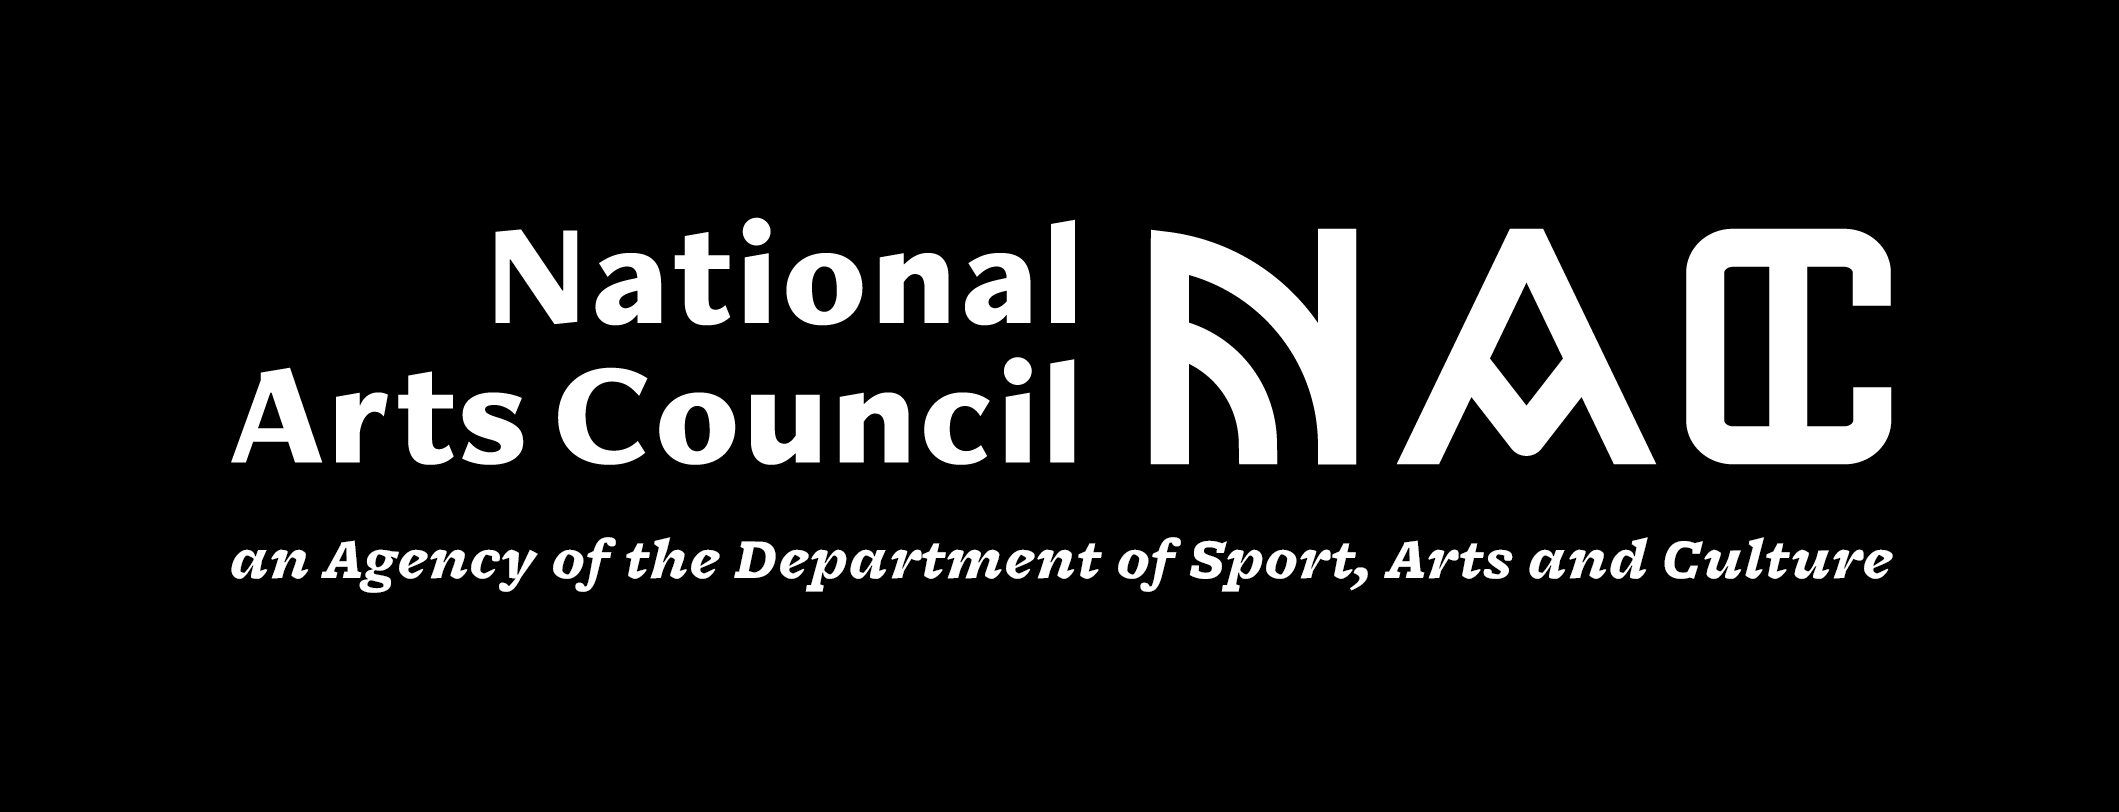 The National Arts Council of South Africa